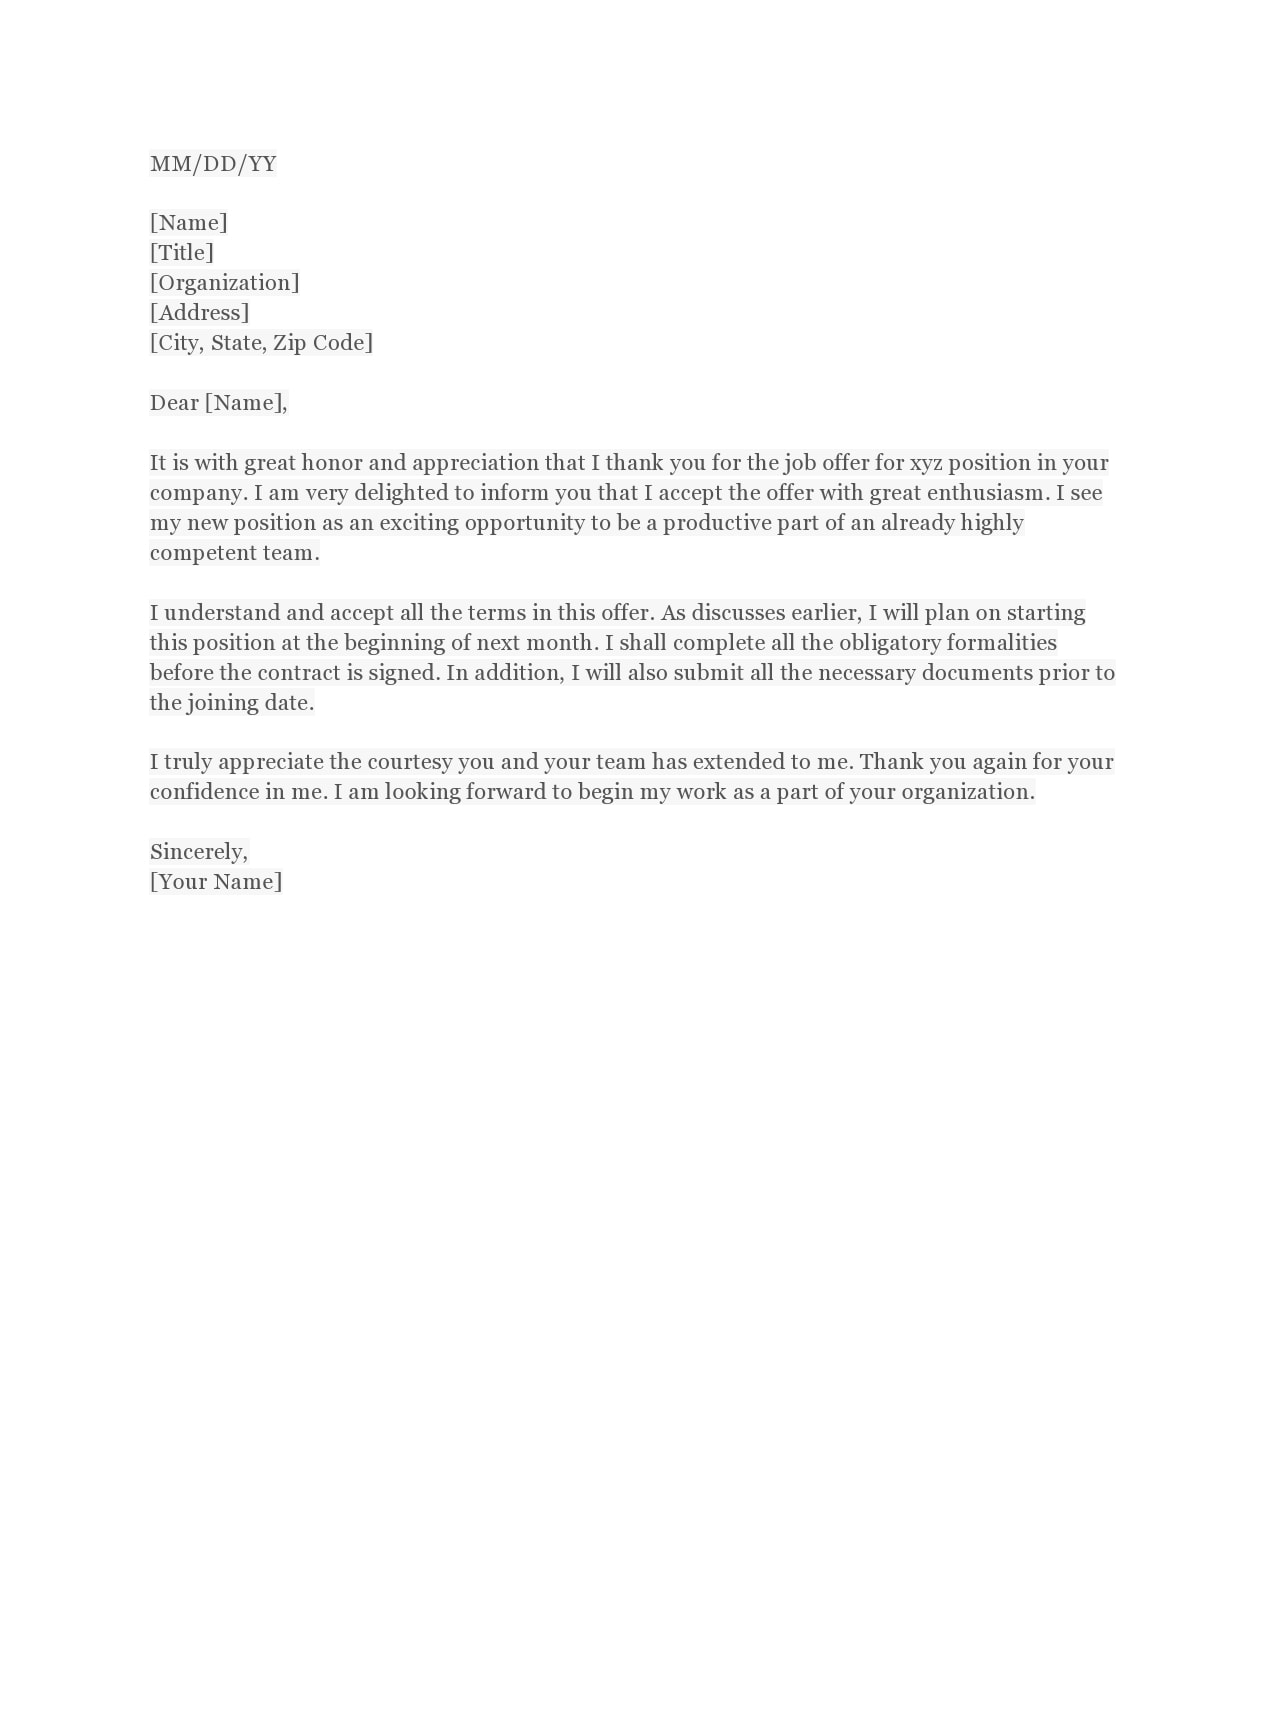 Letter Of Acceptance Job Offer from templatearchive.com